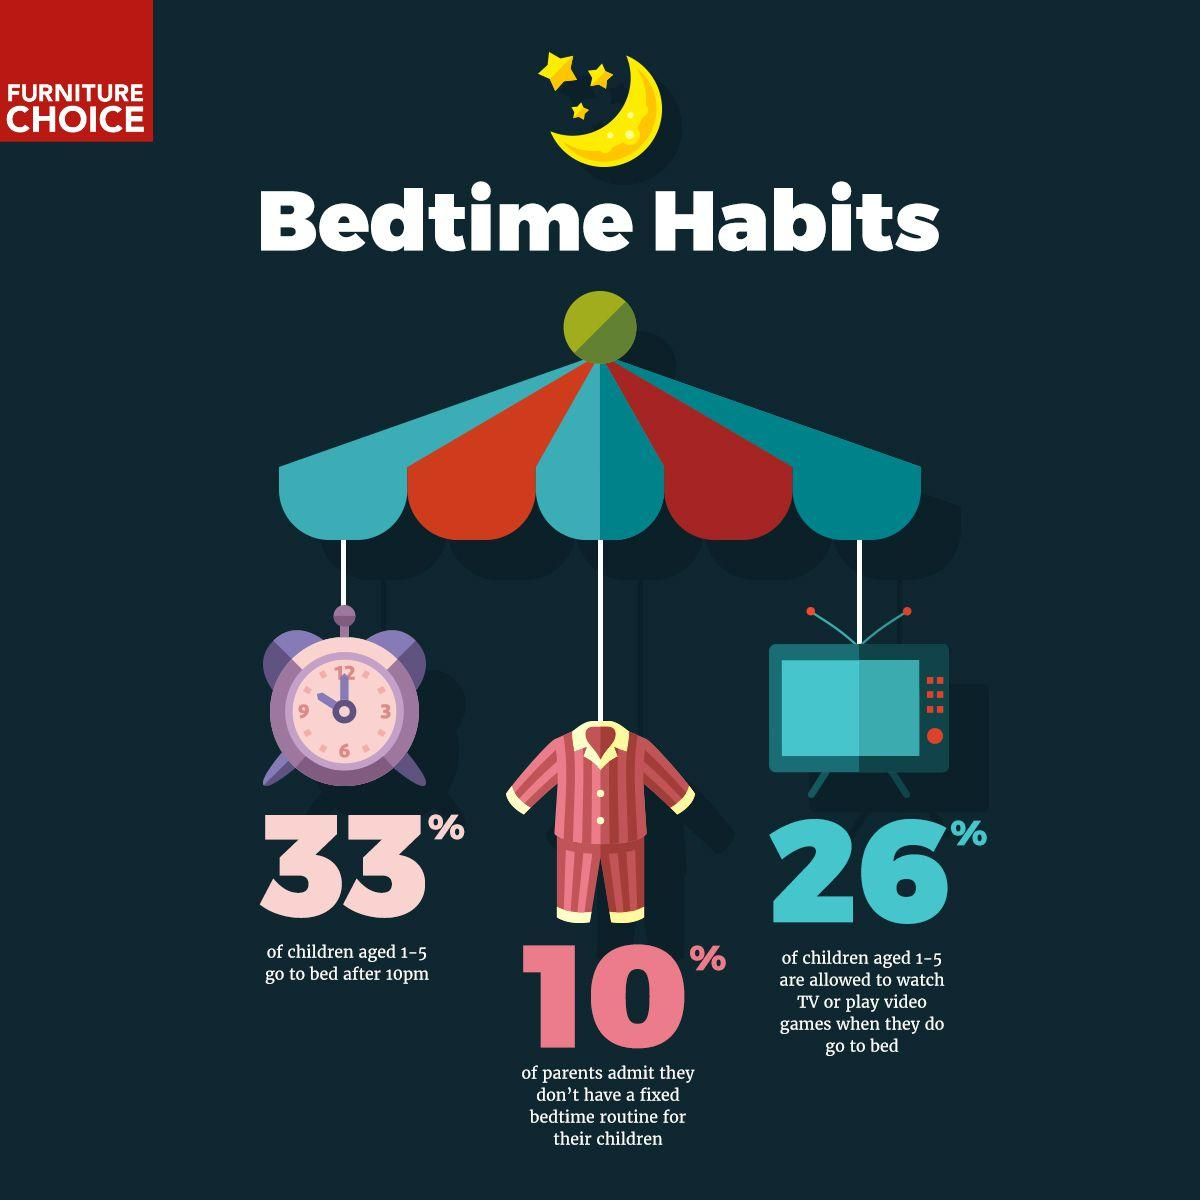 Multicoloured diagram about bedtime habits.